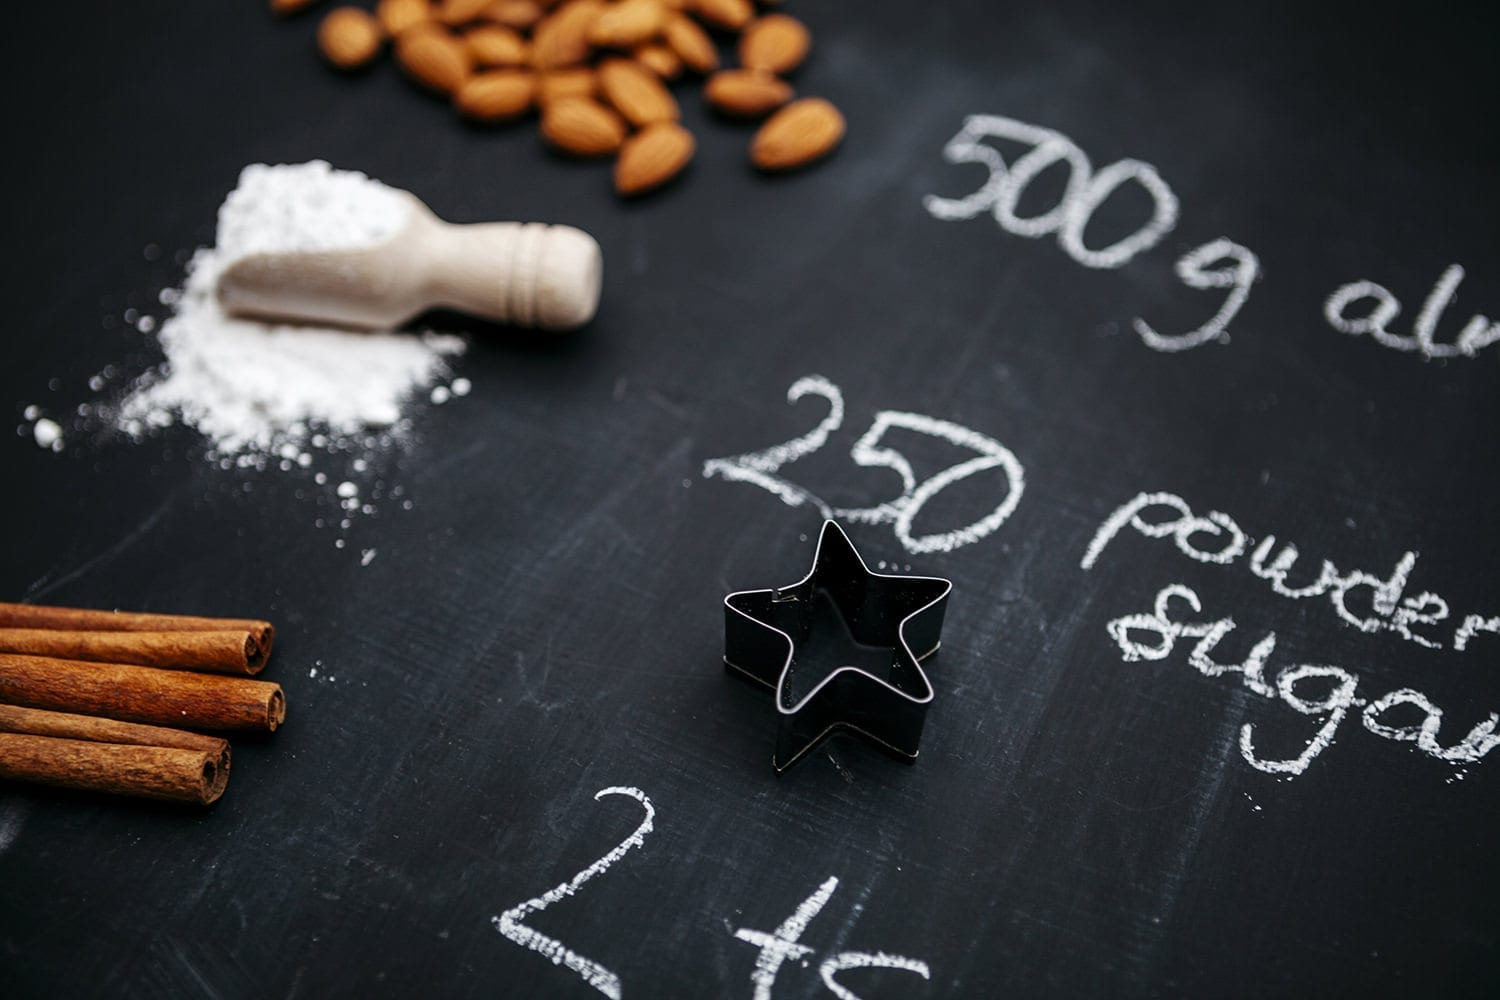 a star cookie cutter for baking cinnamon stars - a german Christmas recipe